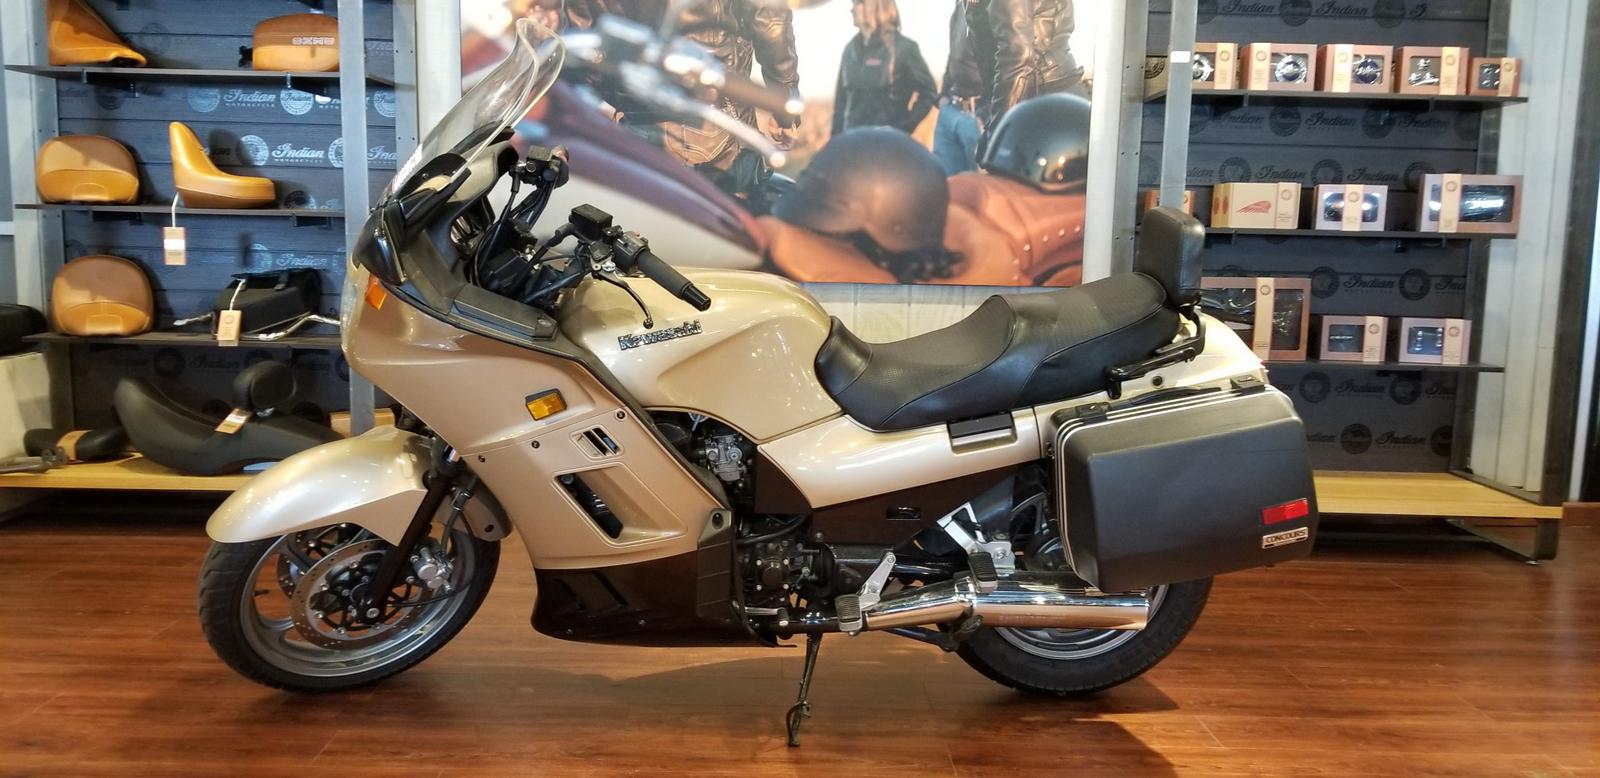 Inventory from Kawasaki and Wolf Indian Motorcycle Des